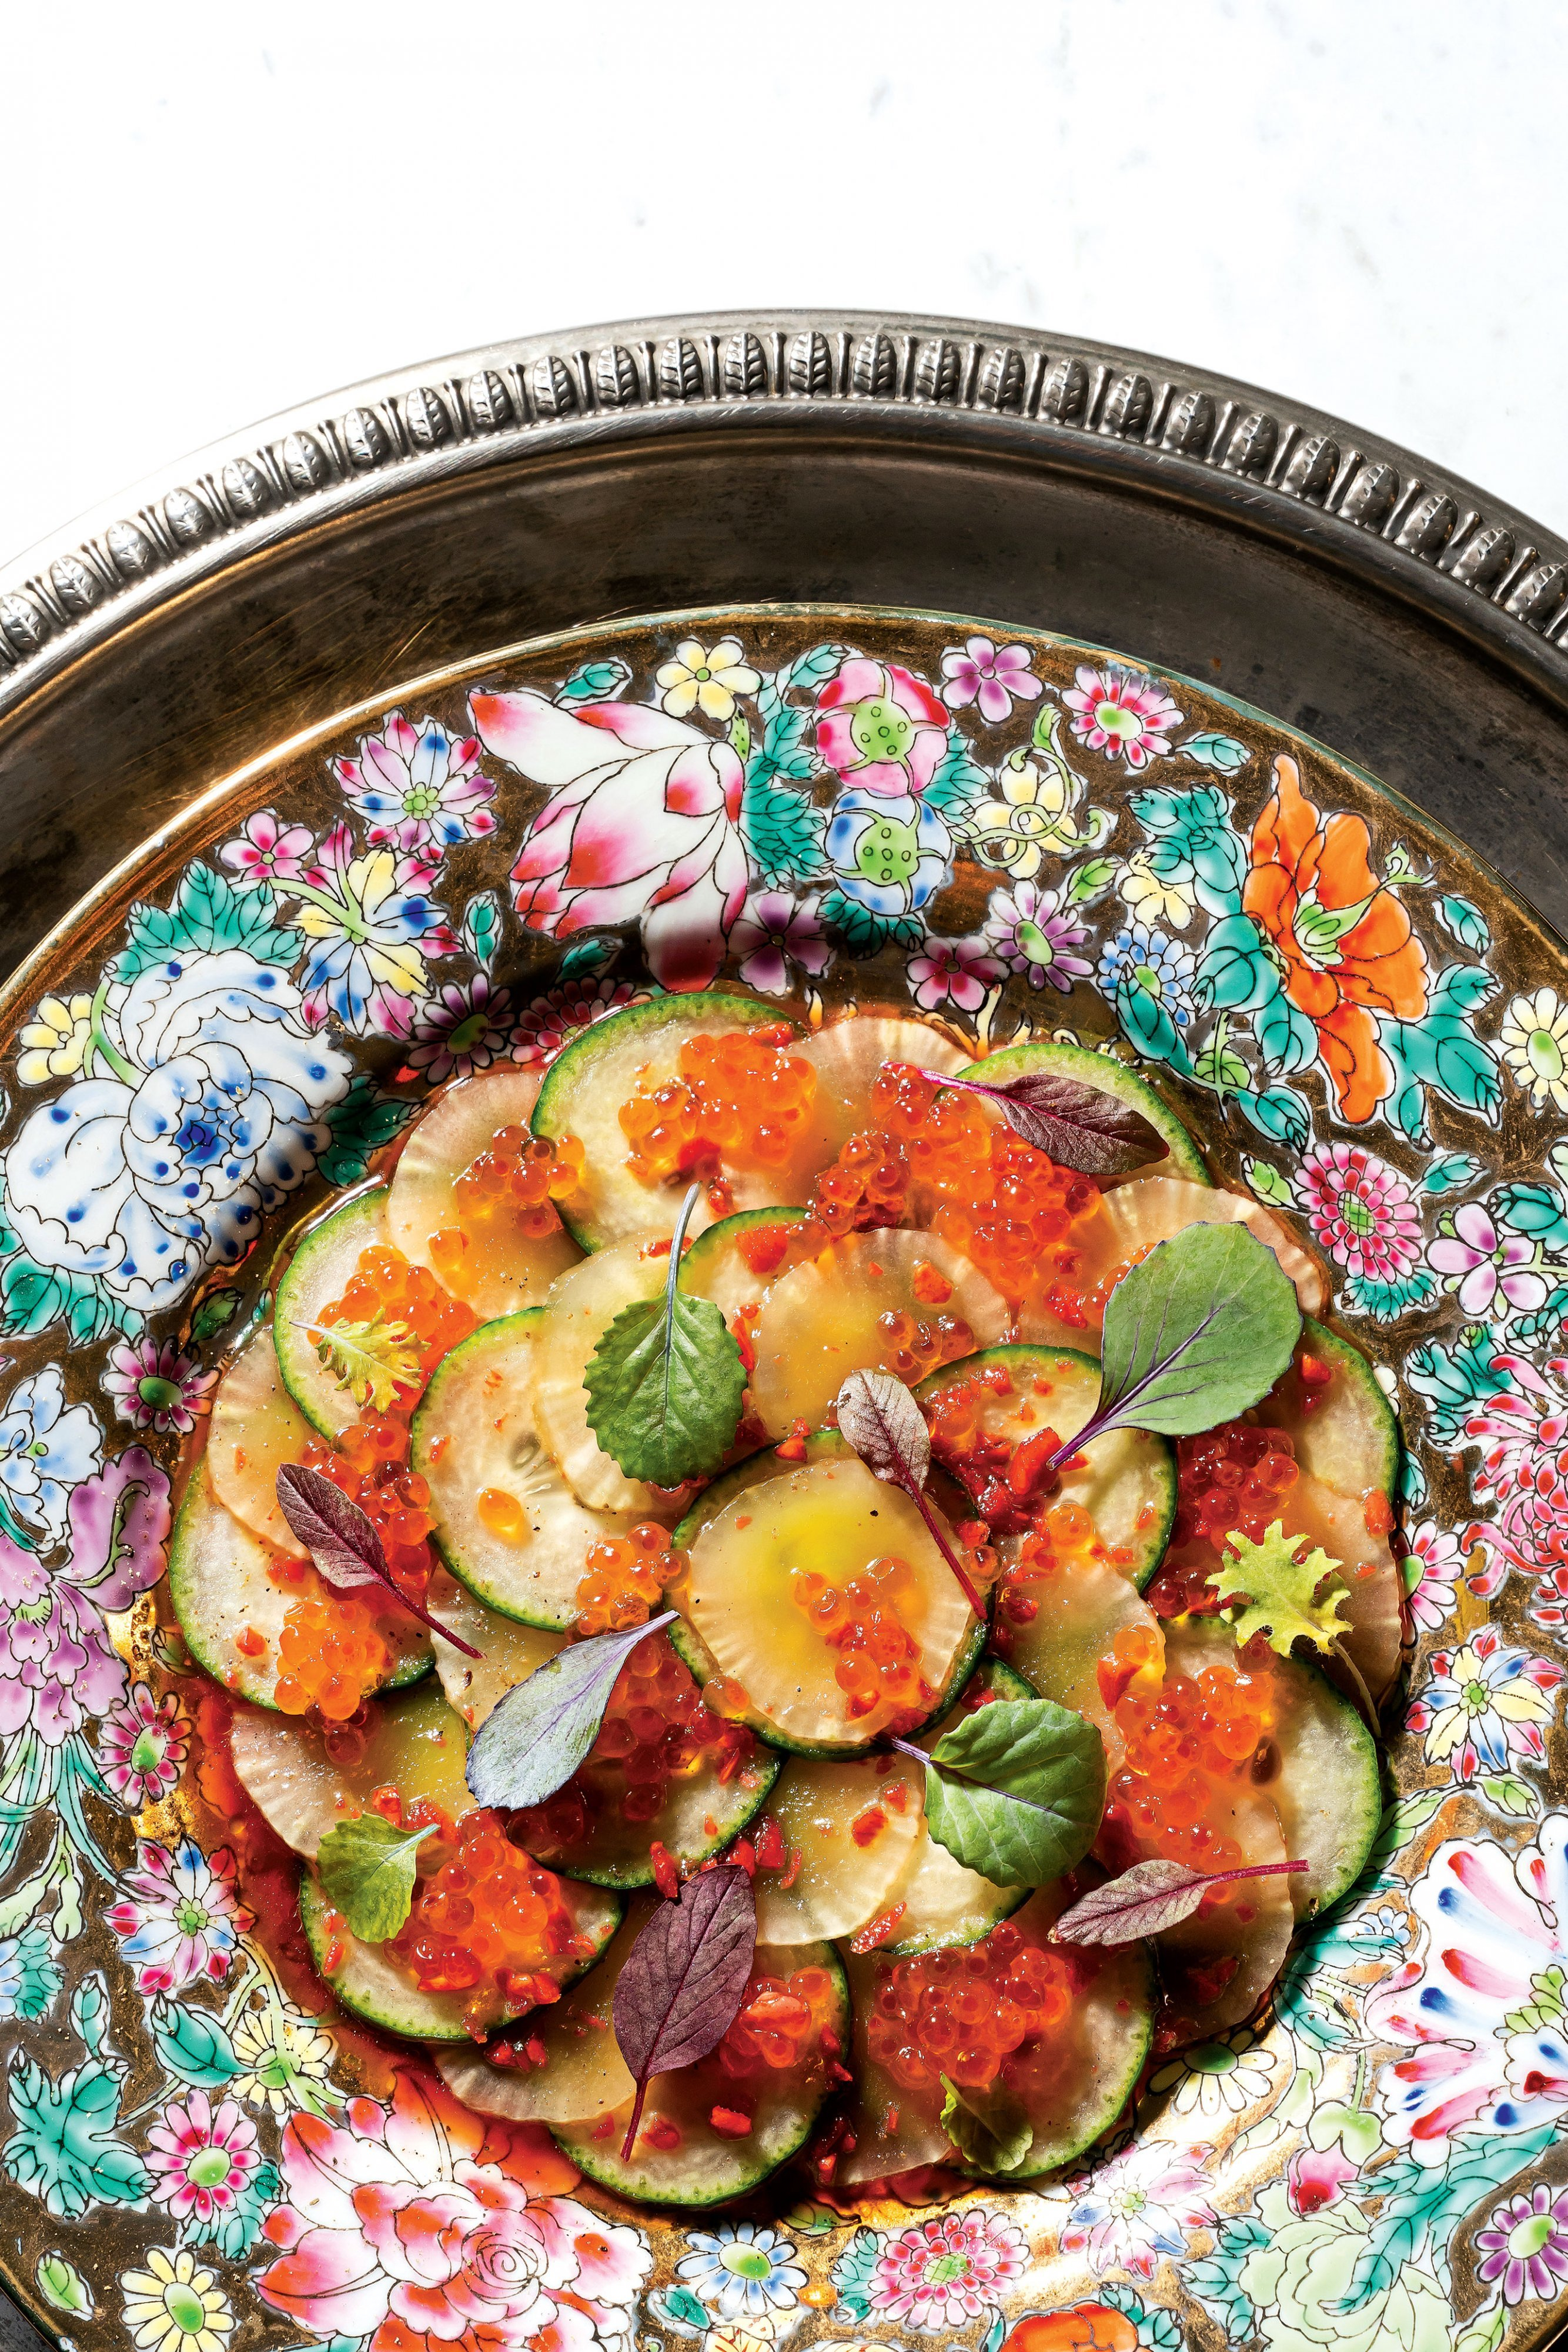 Cheung's version of a cucumber salad made with sesame oil and red vinegar, then strewn with flower petals. Photograph by Scott Suchman.